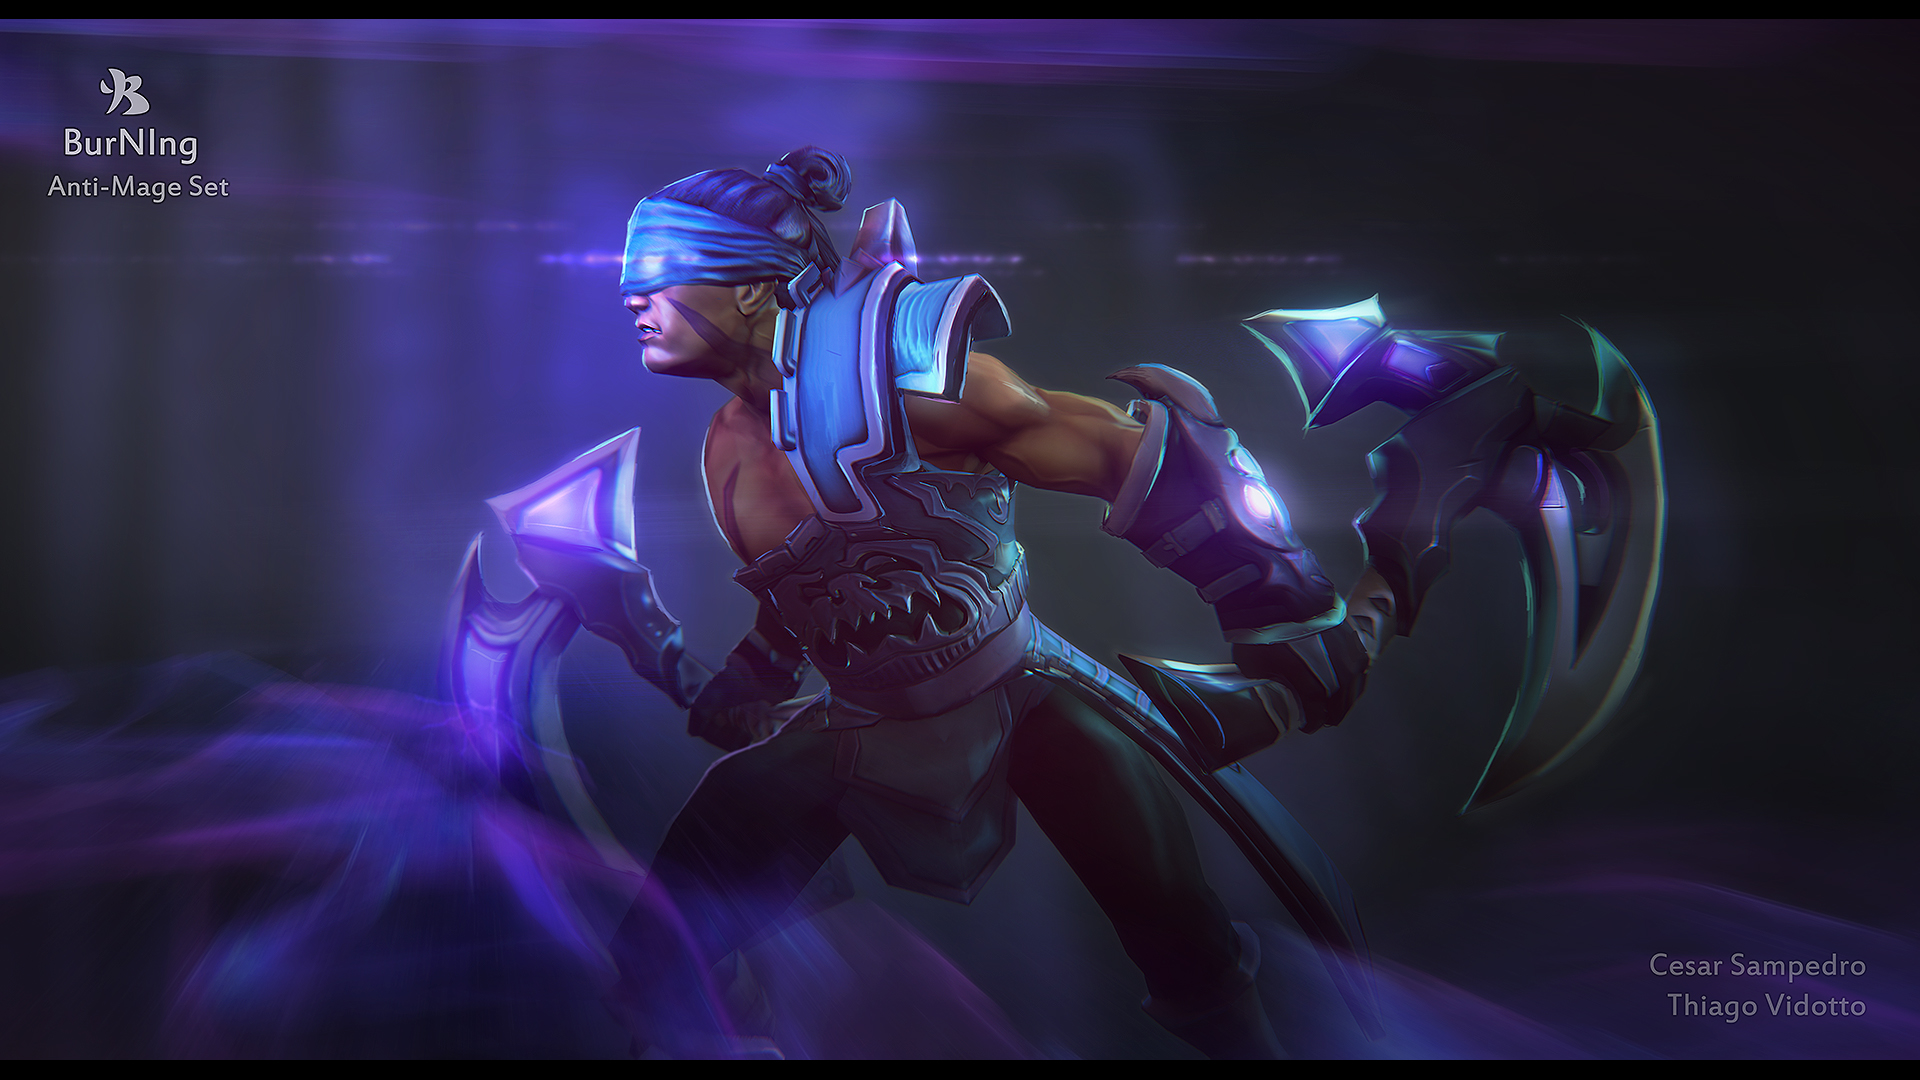 Steam Workshop :: BurNIng Anti-Mage set